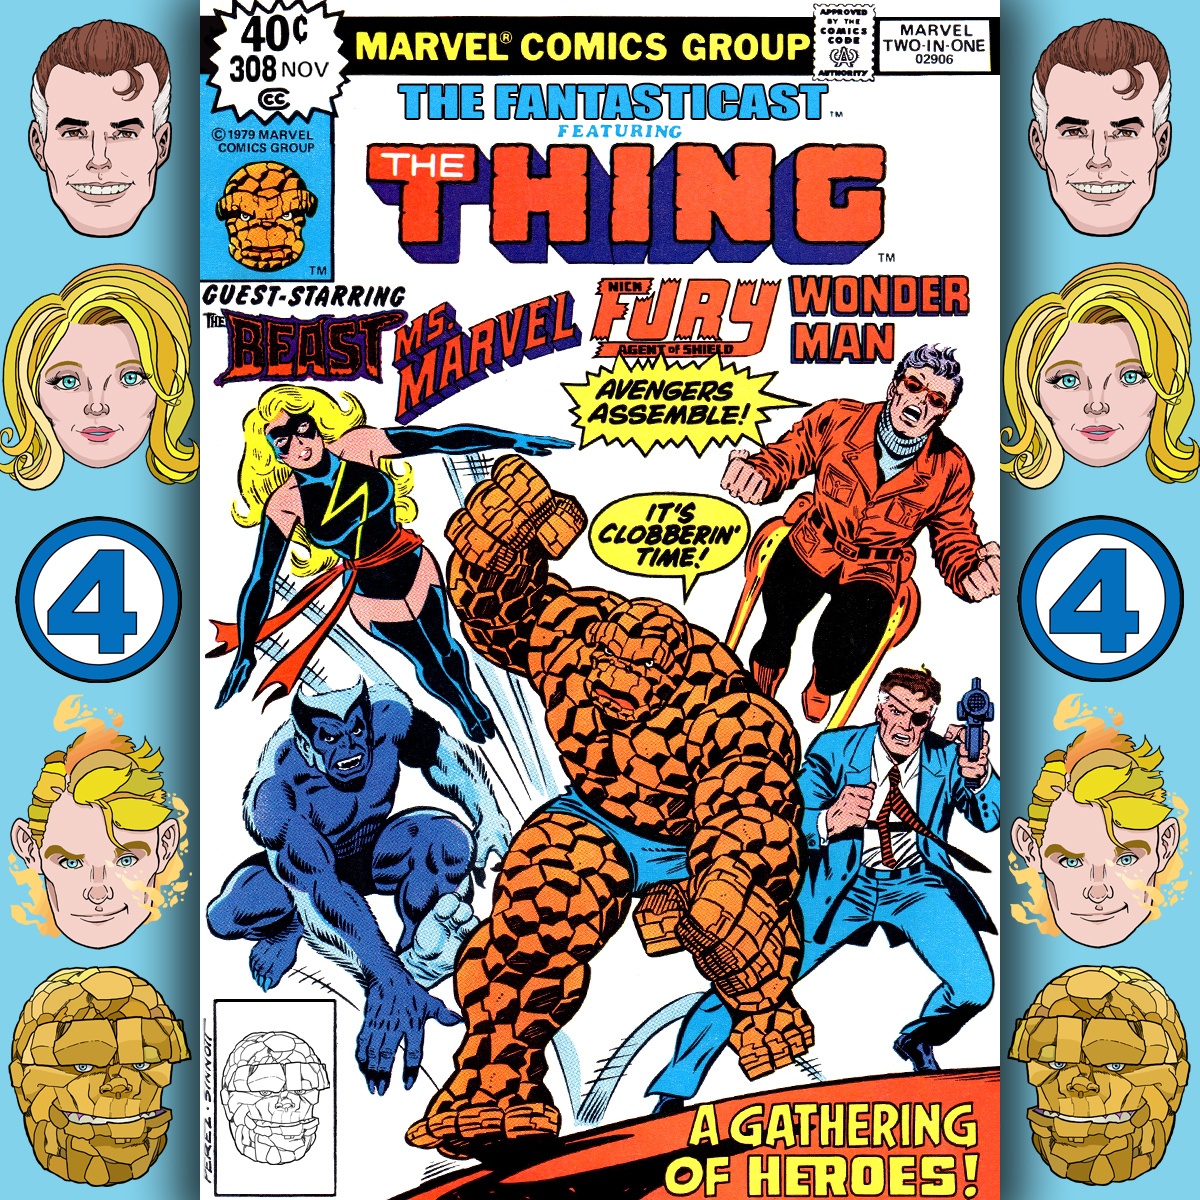 The Fantasticast Episode 308